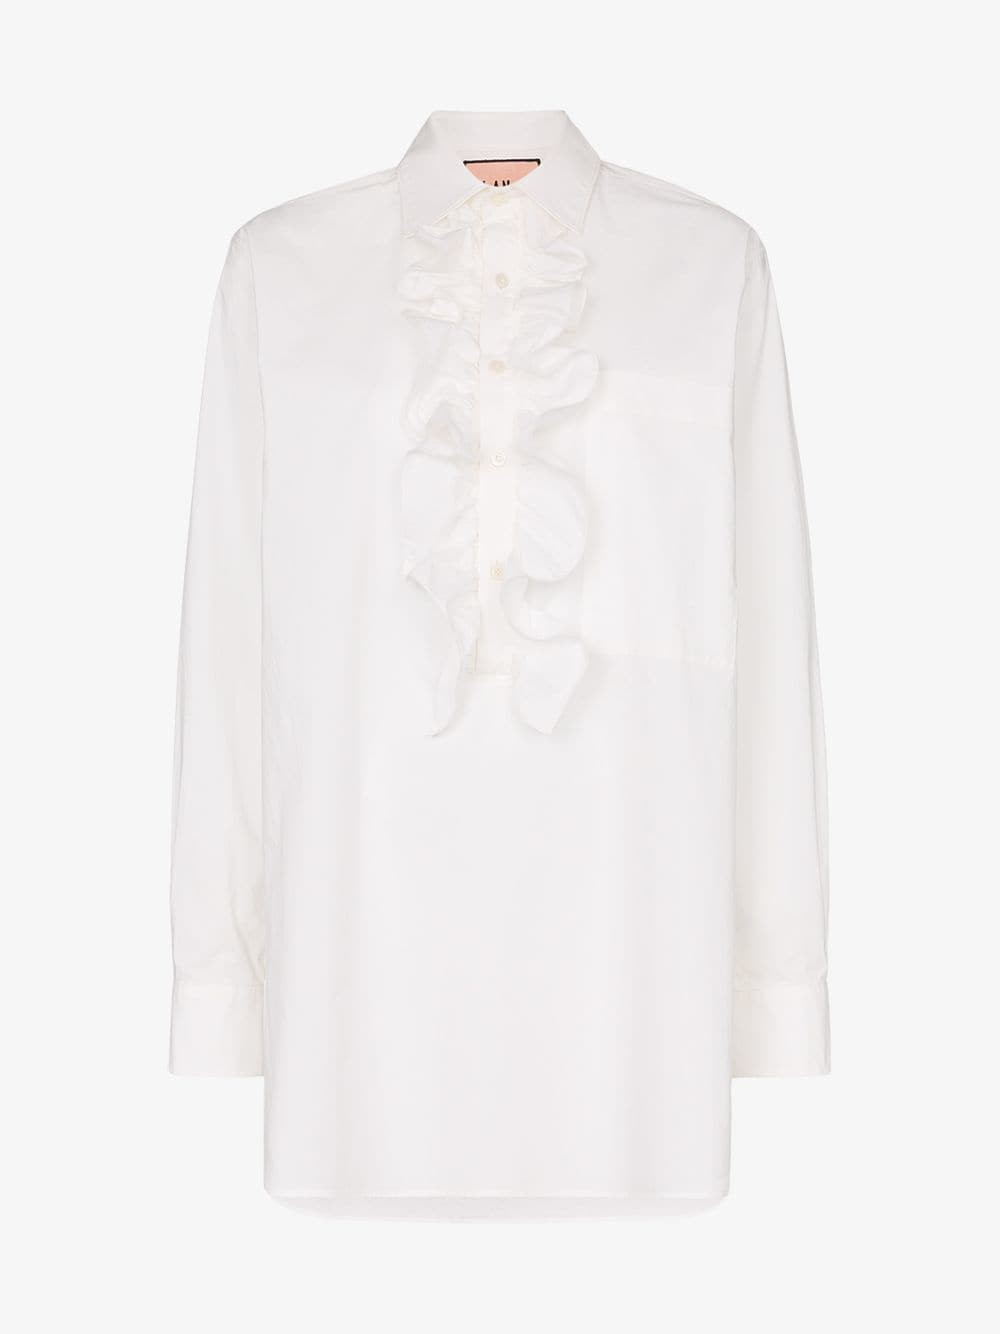 Plan C ruffle placket cotton shirt in white